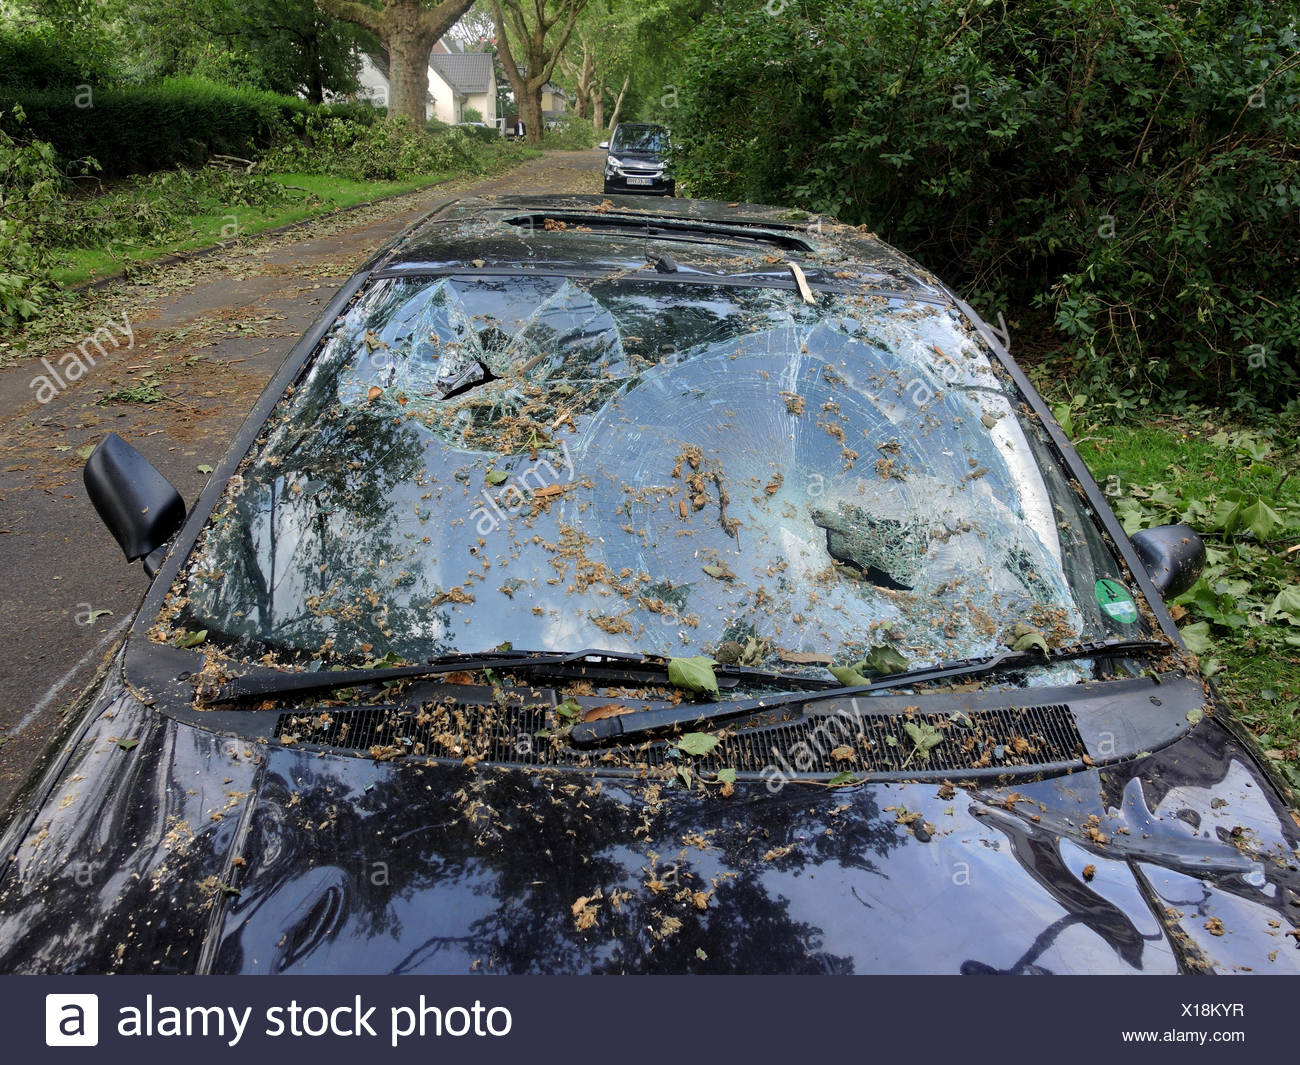 car with broken windscreen, damages by storm front Ela at 2014-06-09, Germany, North Rhine-Westphalia, Ruhr Area, Bochum - Stock Image